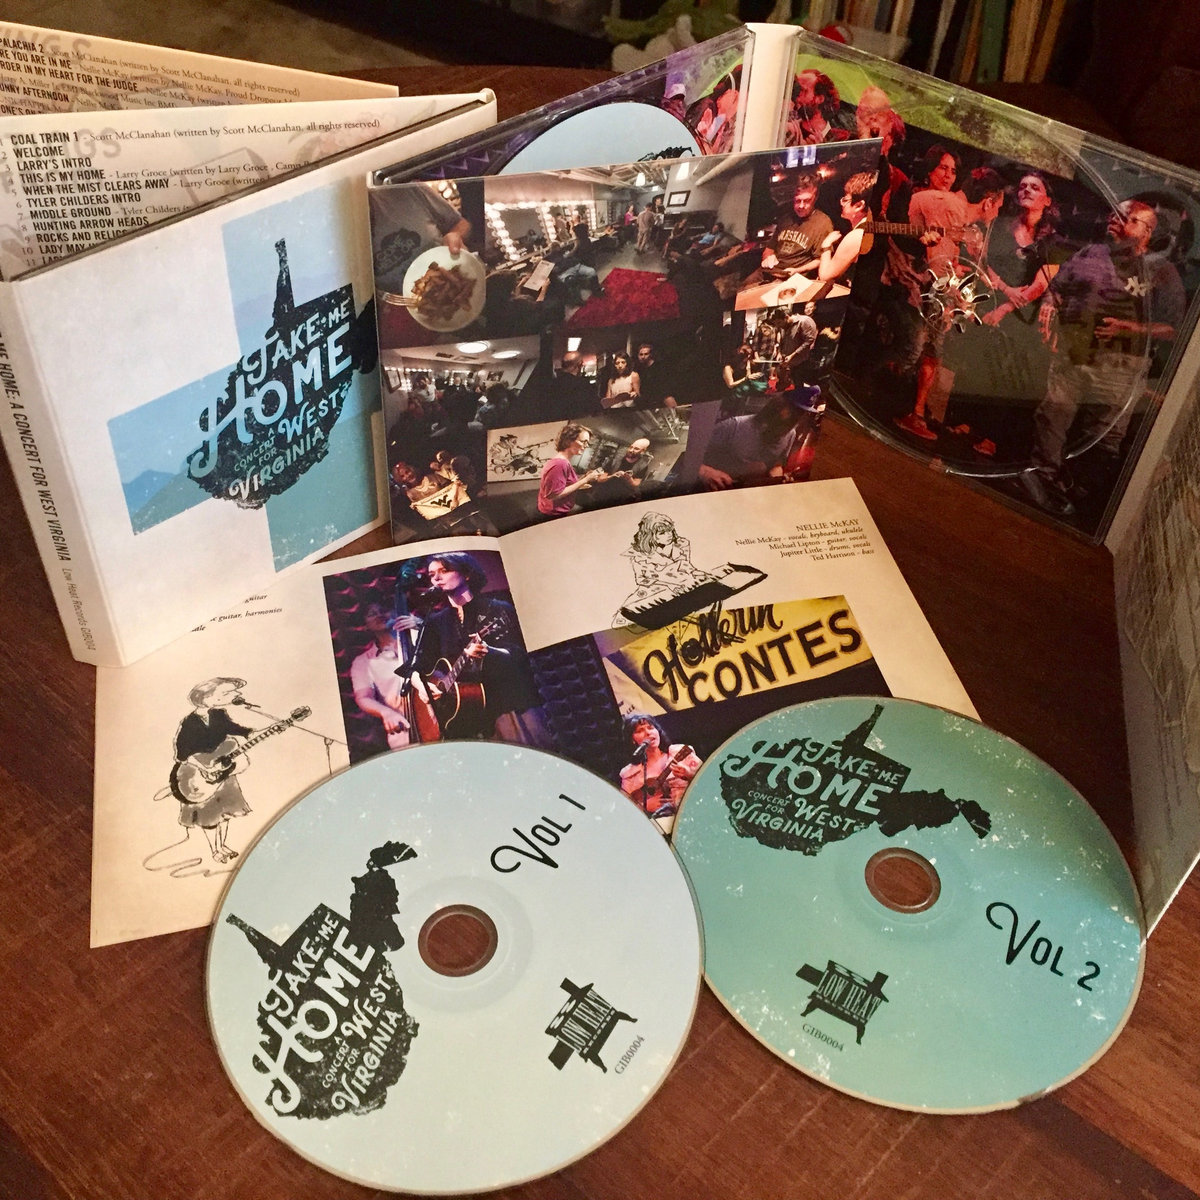 Limited Edition Double Cd Presented In 8 Panel Double Gatefold Sleeve With 16 Page Booklet Full Of Photos By Todd Cerveris And Artwork By Michael Arthur